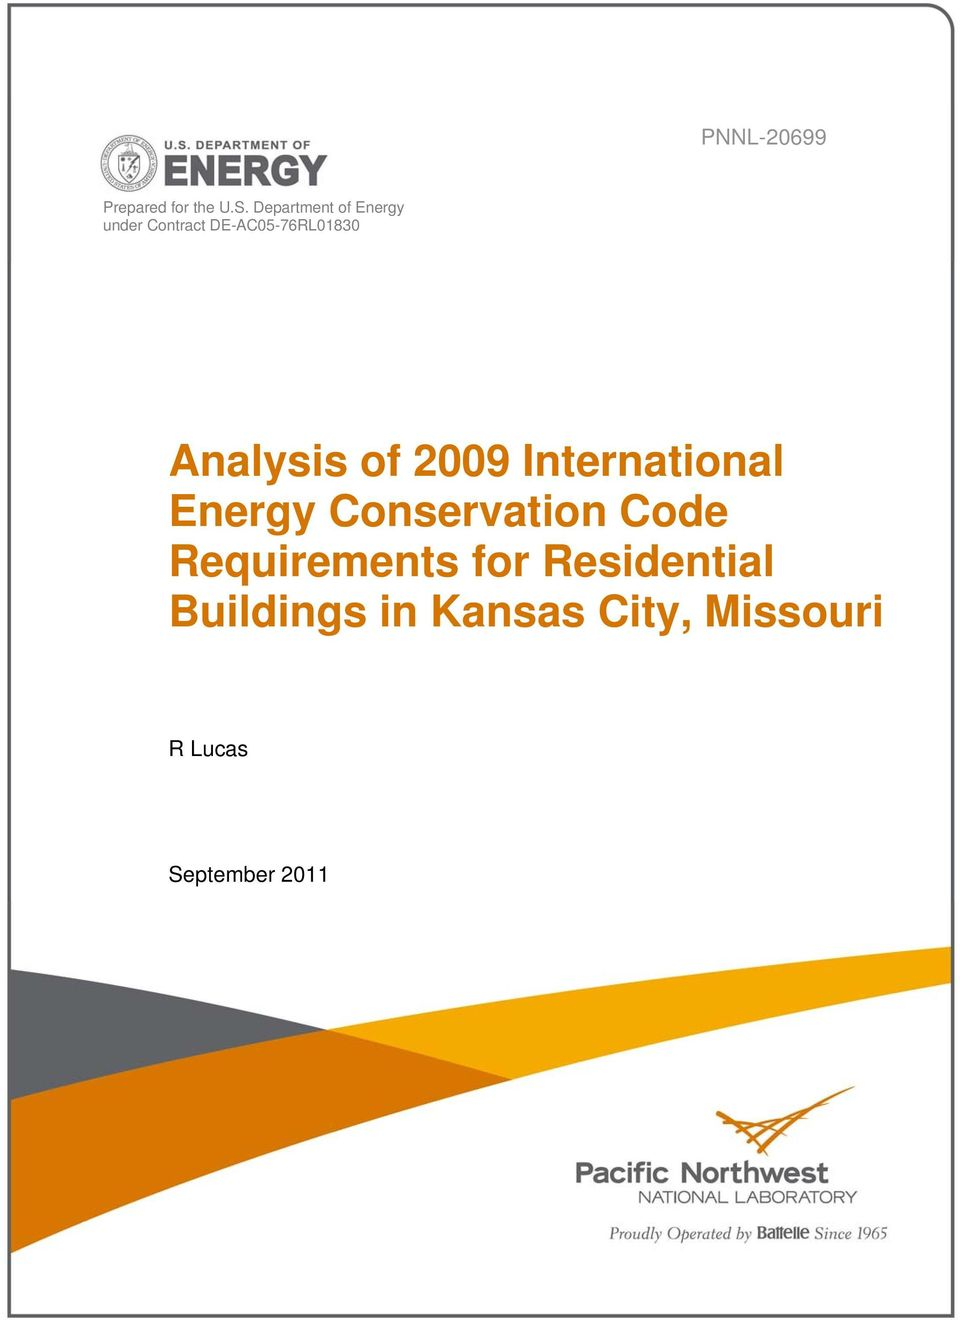 Analysis of 2009 International Energy Conservation Code